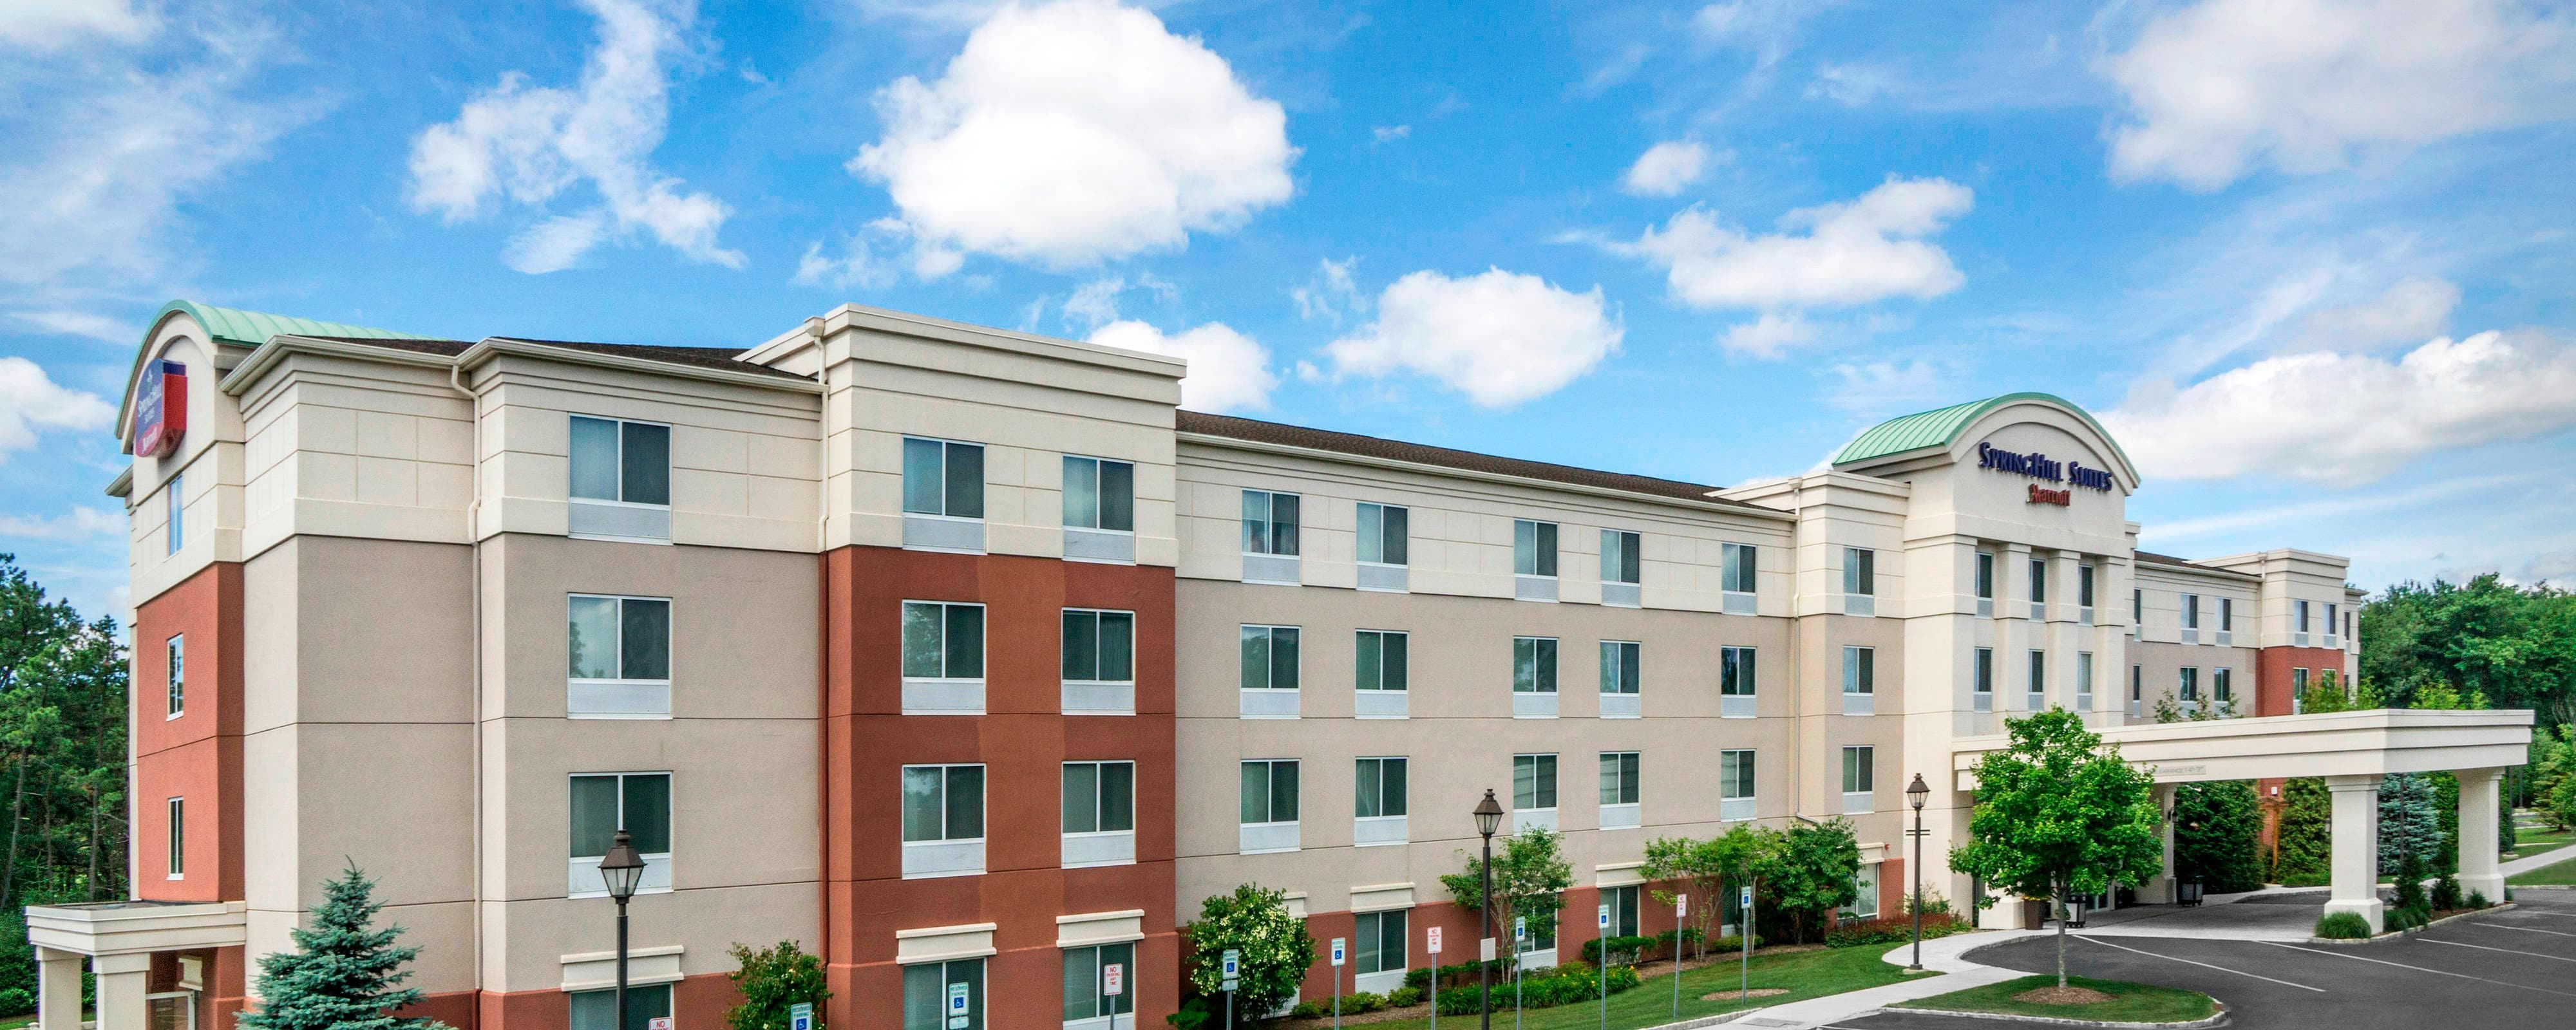 Hotels near MacArthur Airport | SpringHill Suites Long Island Brookhaven